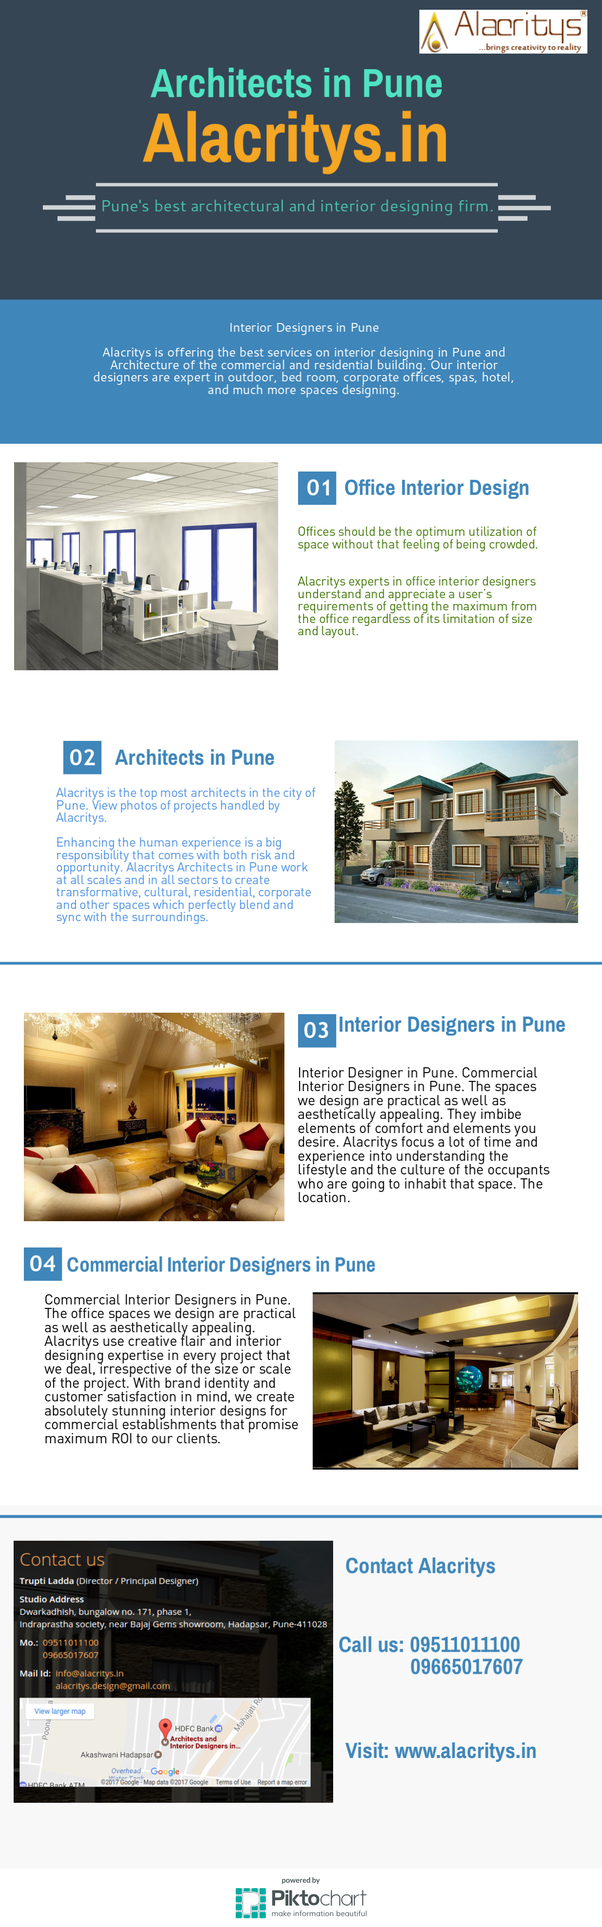 who are the best architects in pune quora